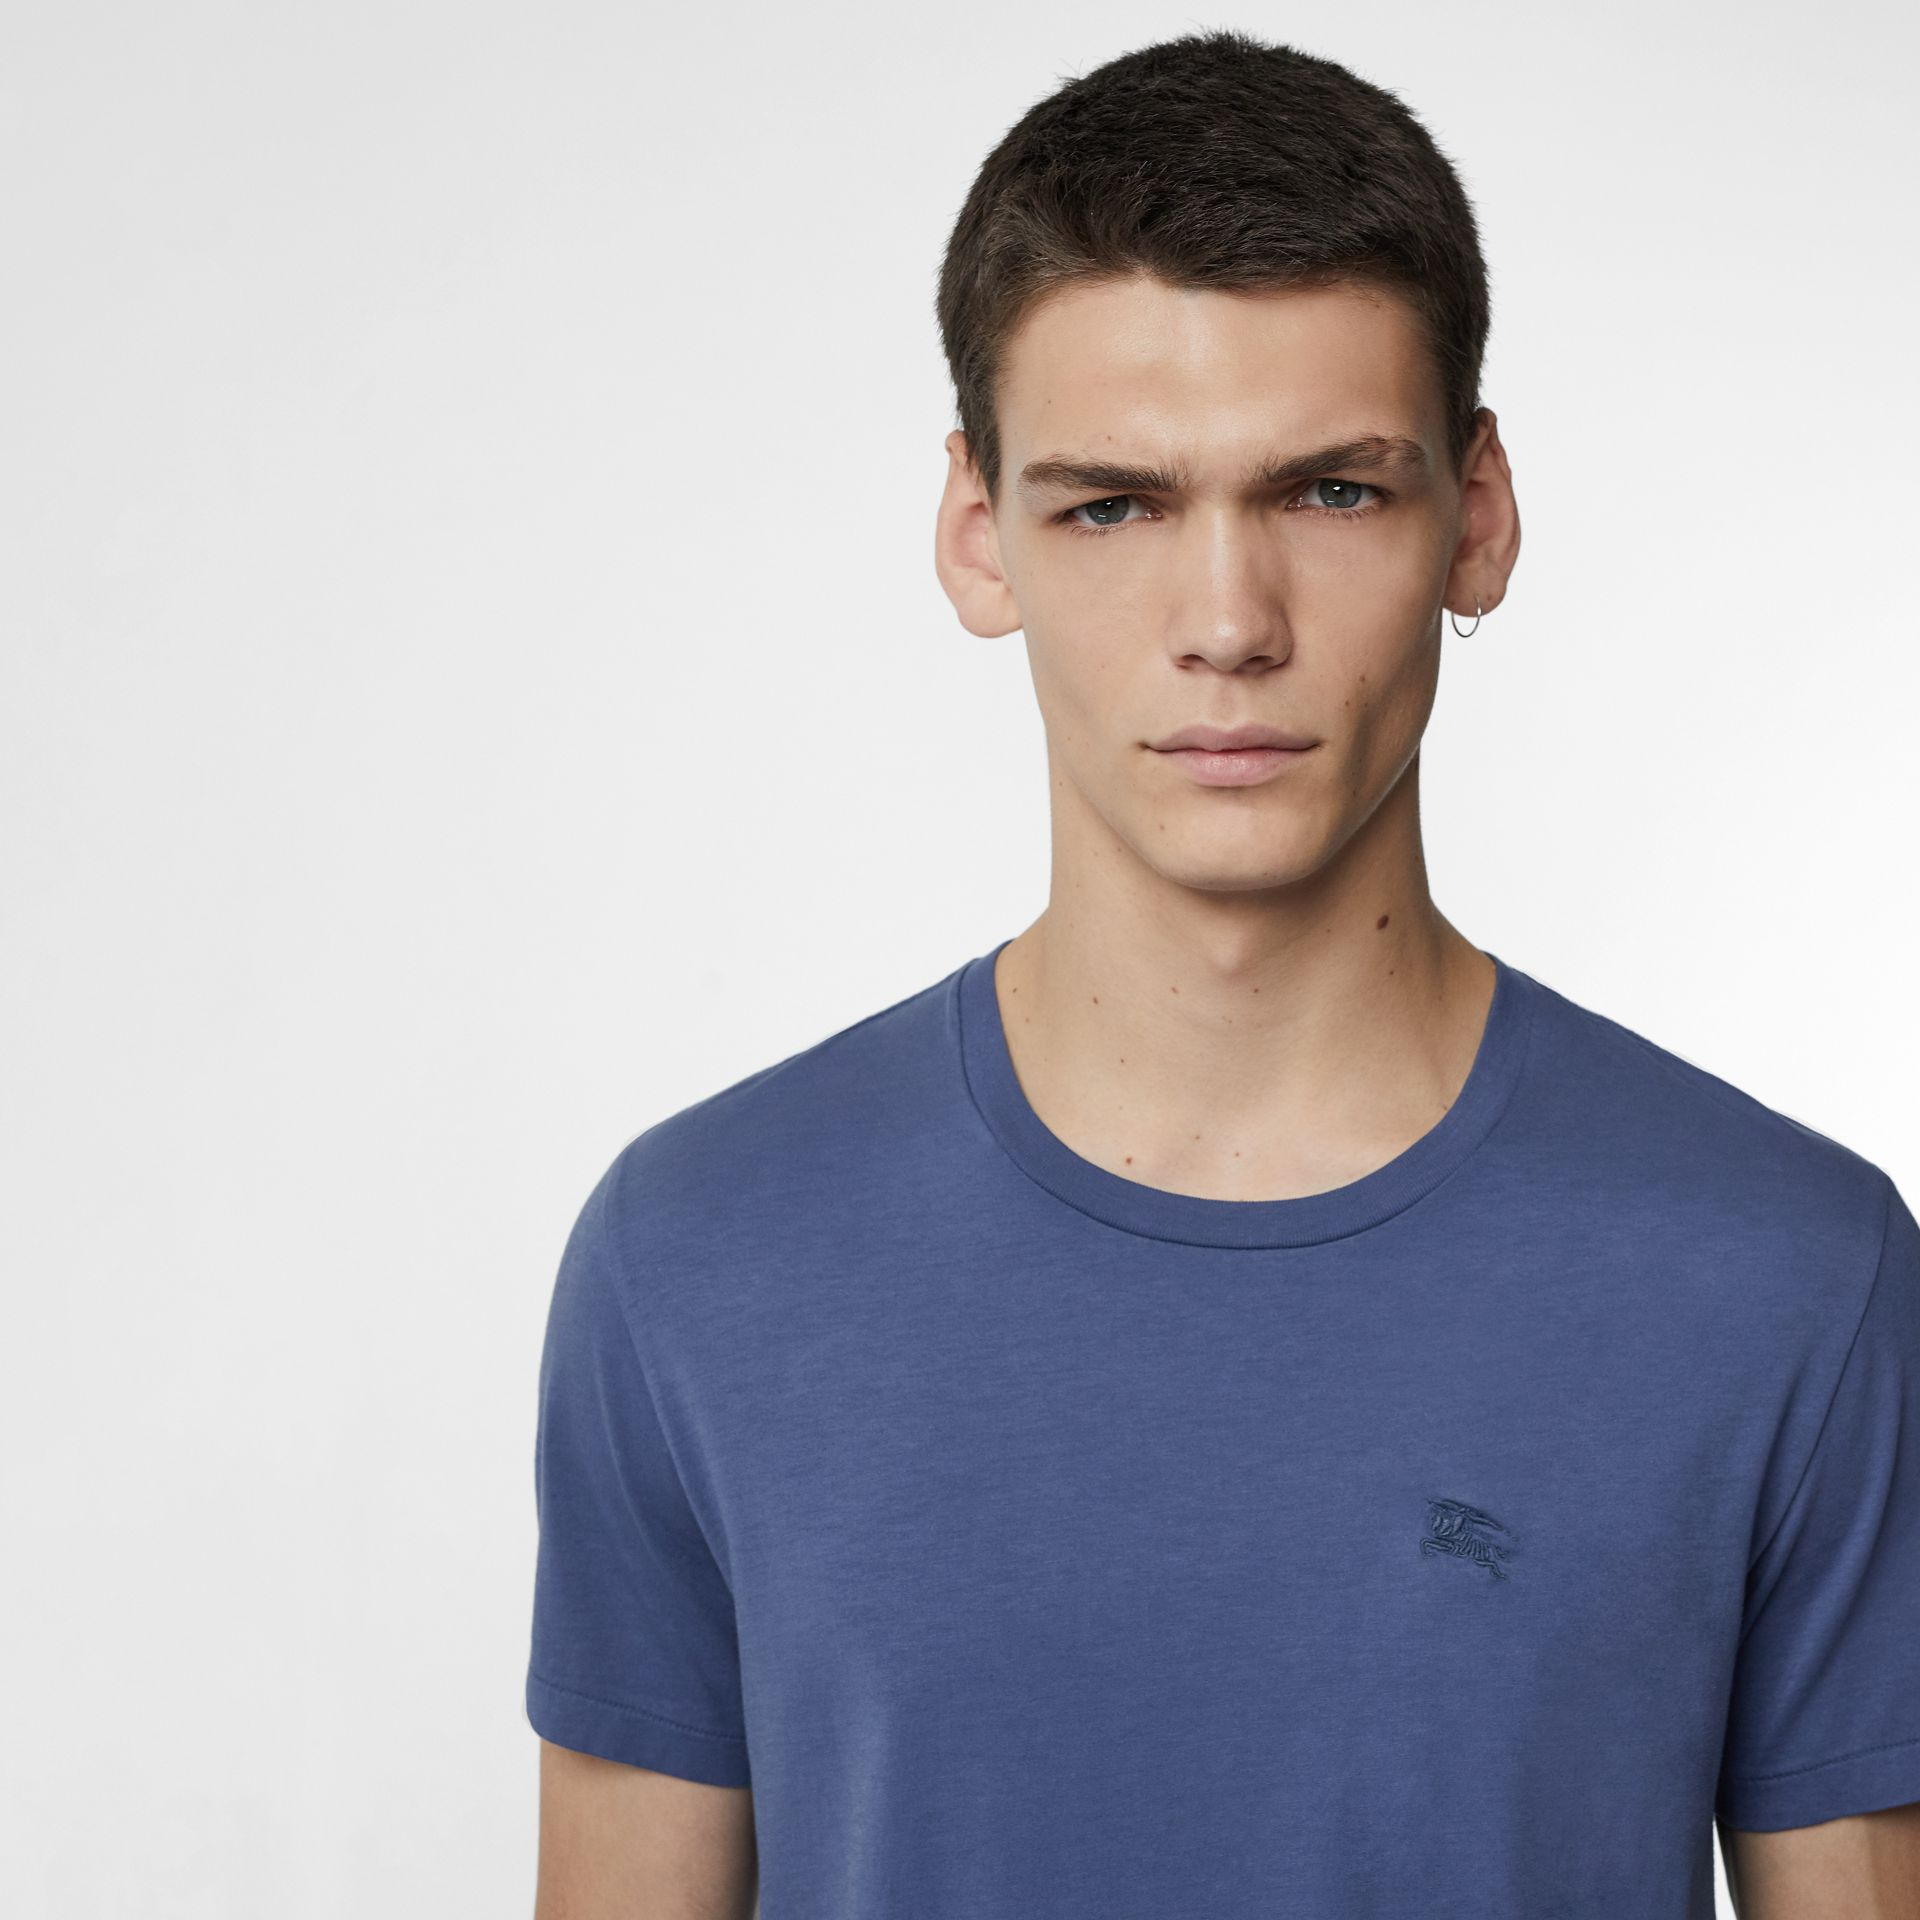 Cotton T-shirt in Pebble Blue - Men | Burberry - gallery image 1